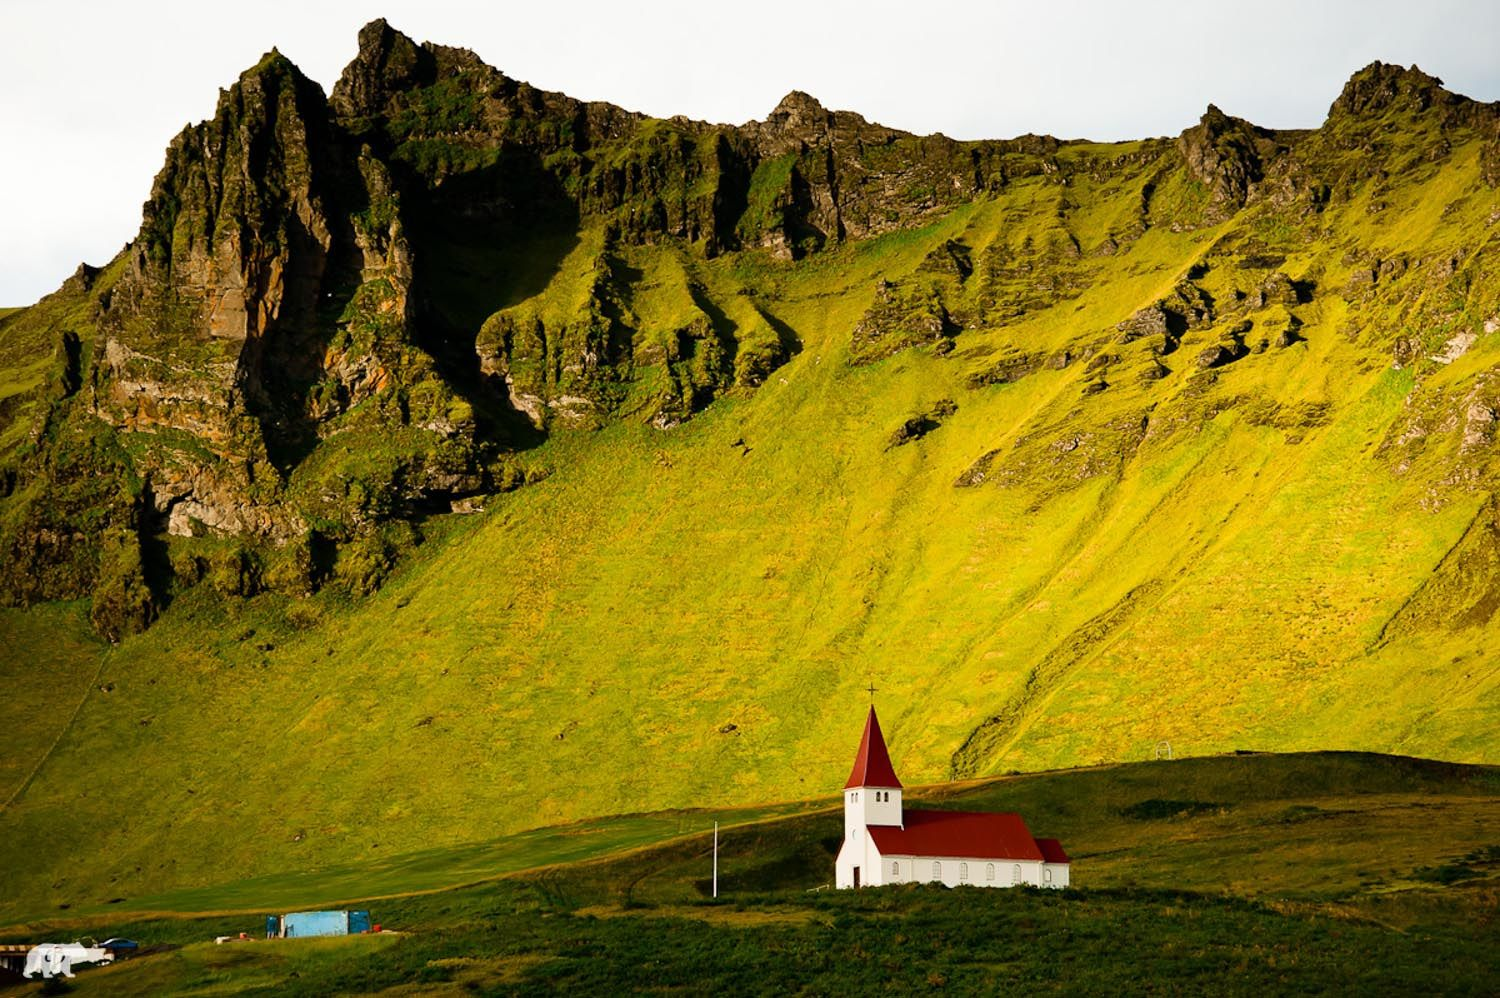 Chapel in the mountains. by Chris  Burkard / 500px